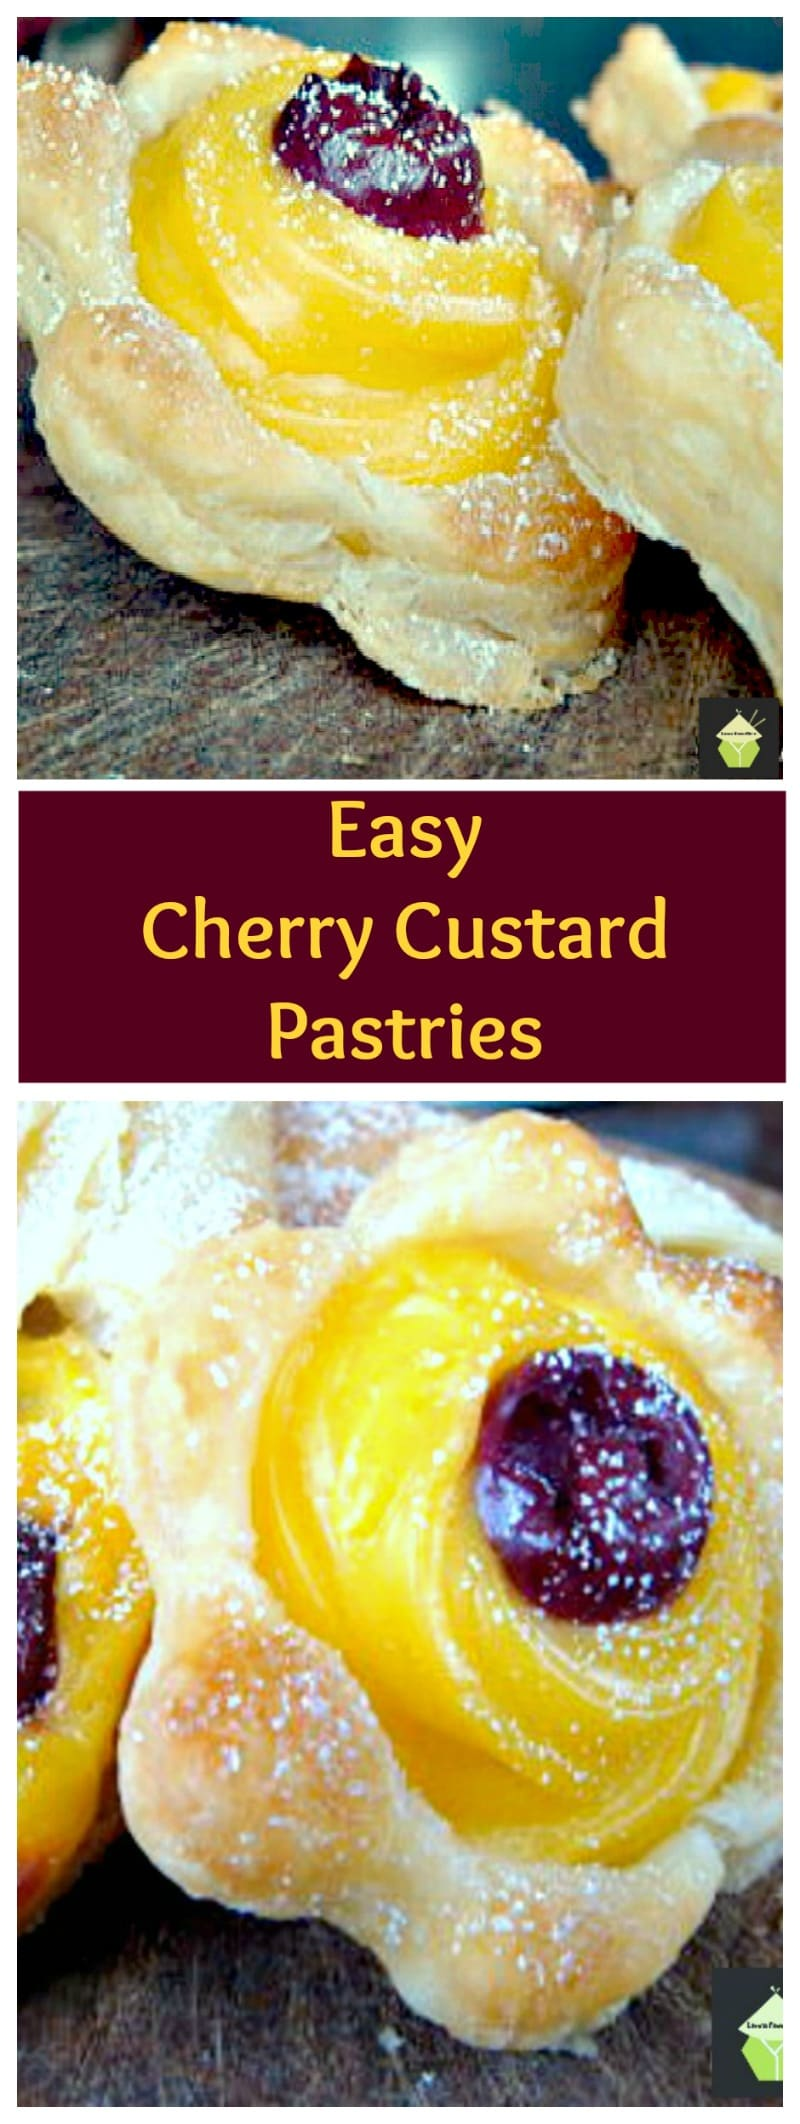 Cherry Custard Pastries | Lovefoodies